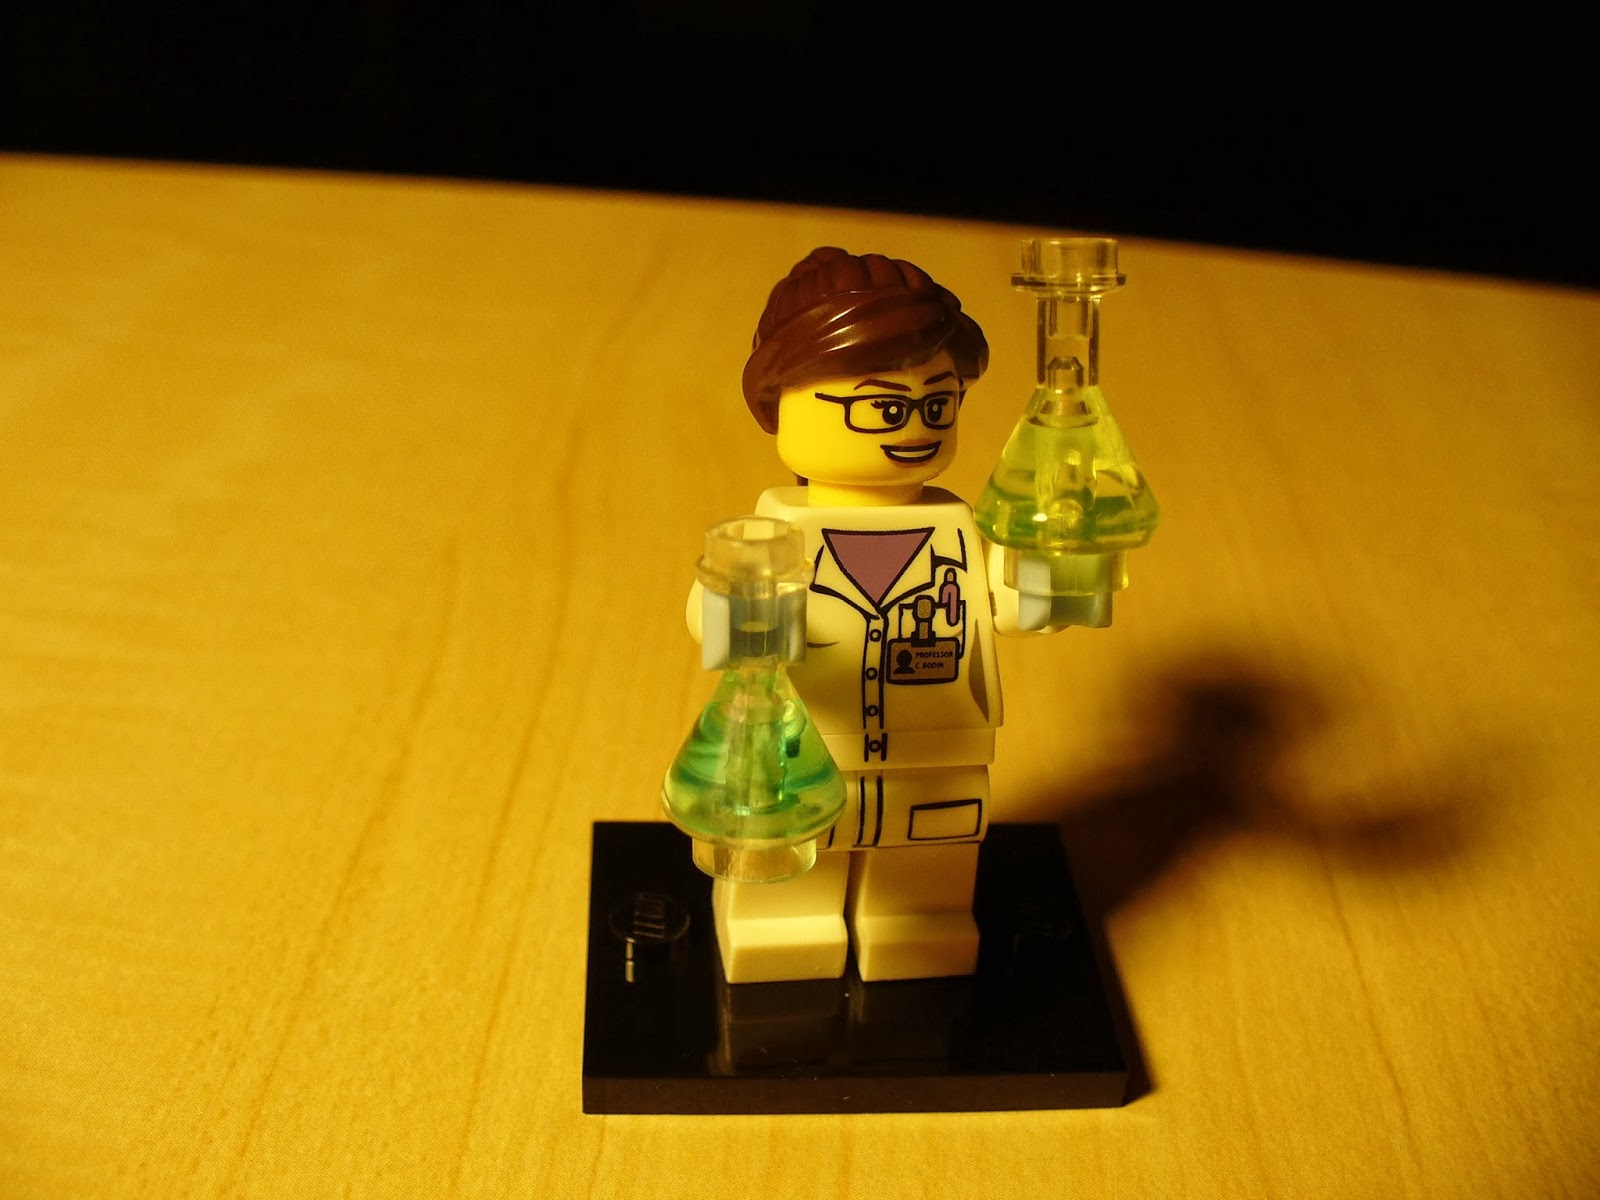 Scientist from Lego Minifig Series 11